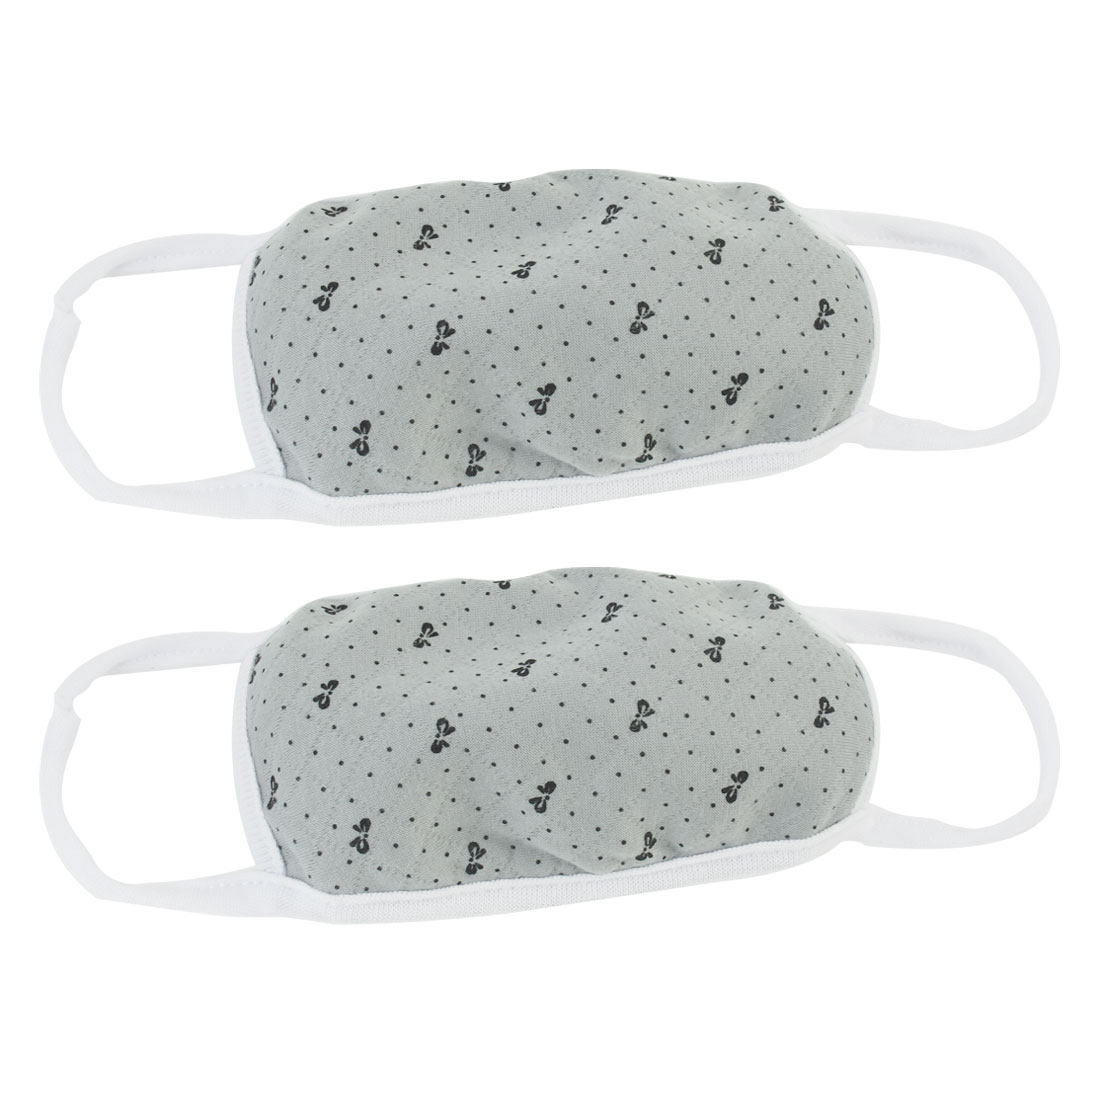 2 Pcs Dots Print Cotton Blends Acrylic Earloop Face Mouth Mask Muffle